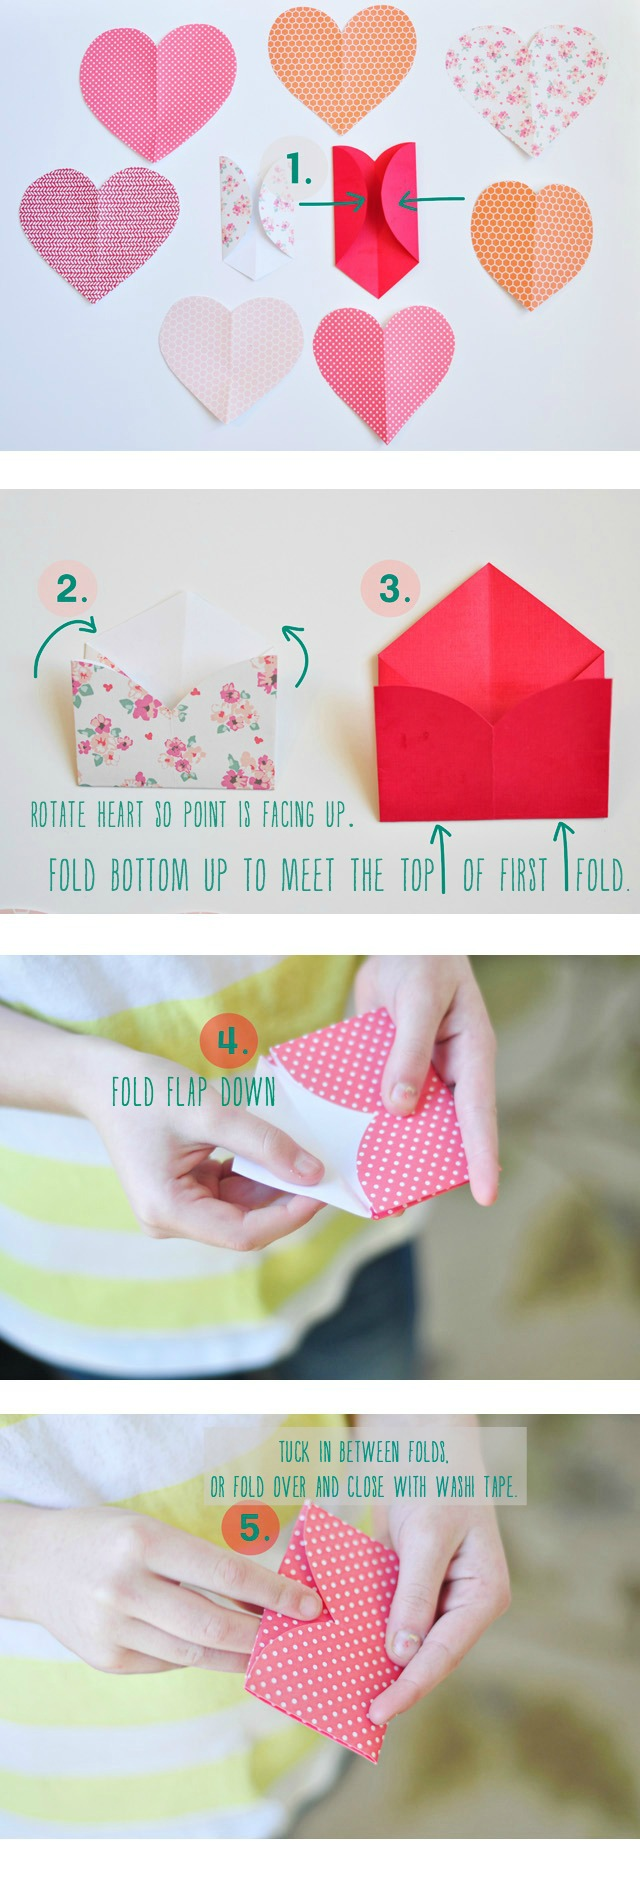 tutorial to fold paper hearts into envelopes